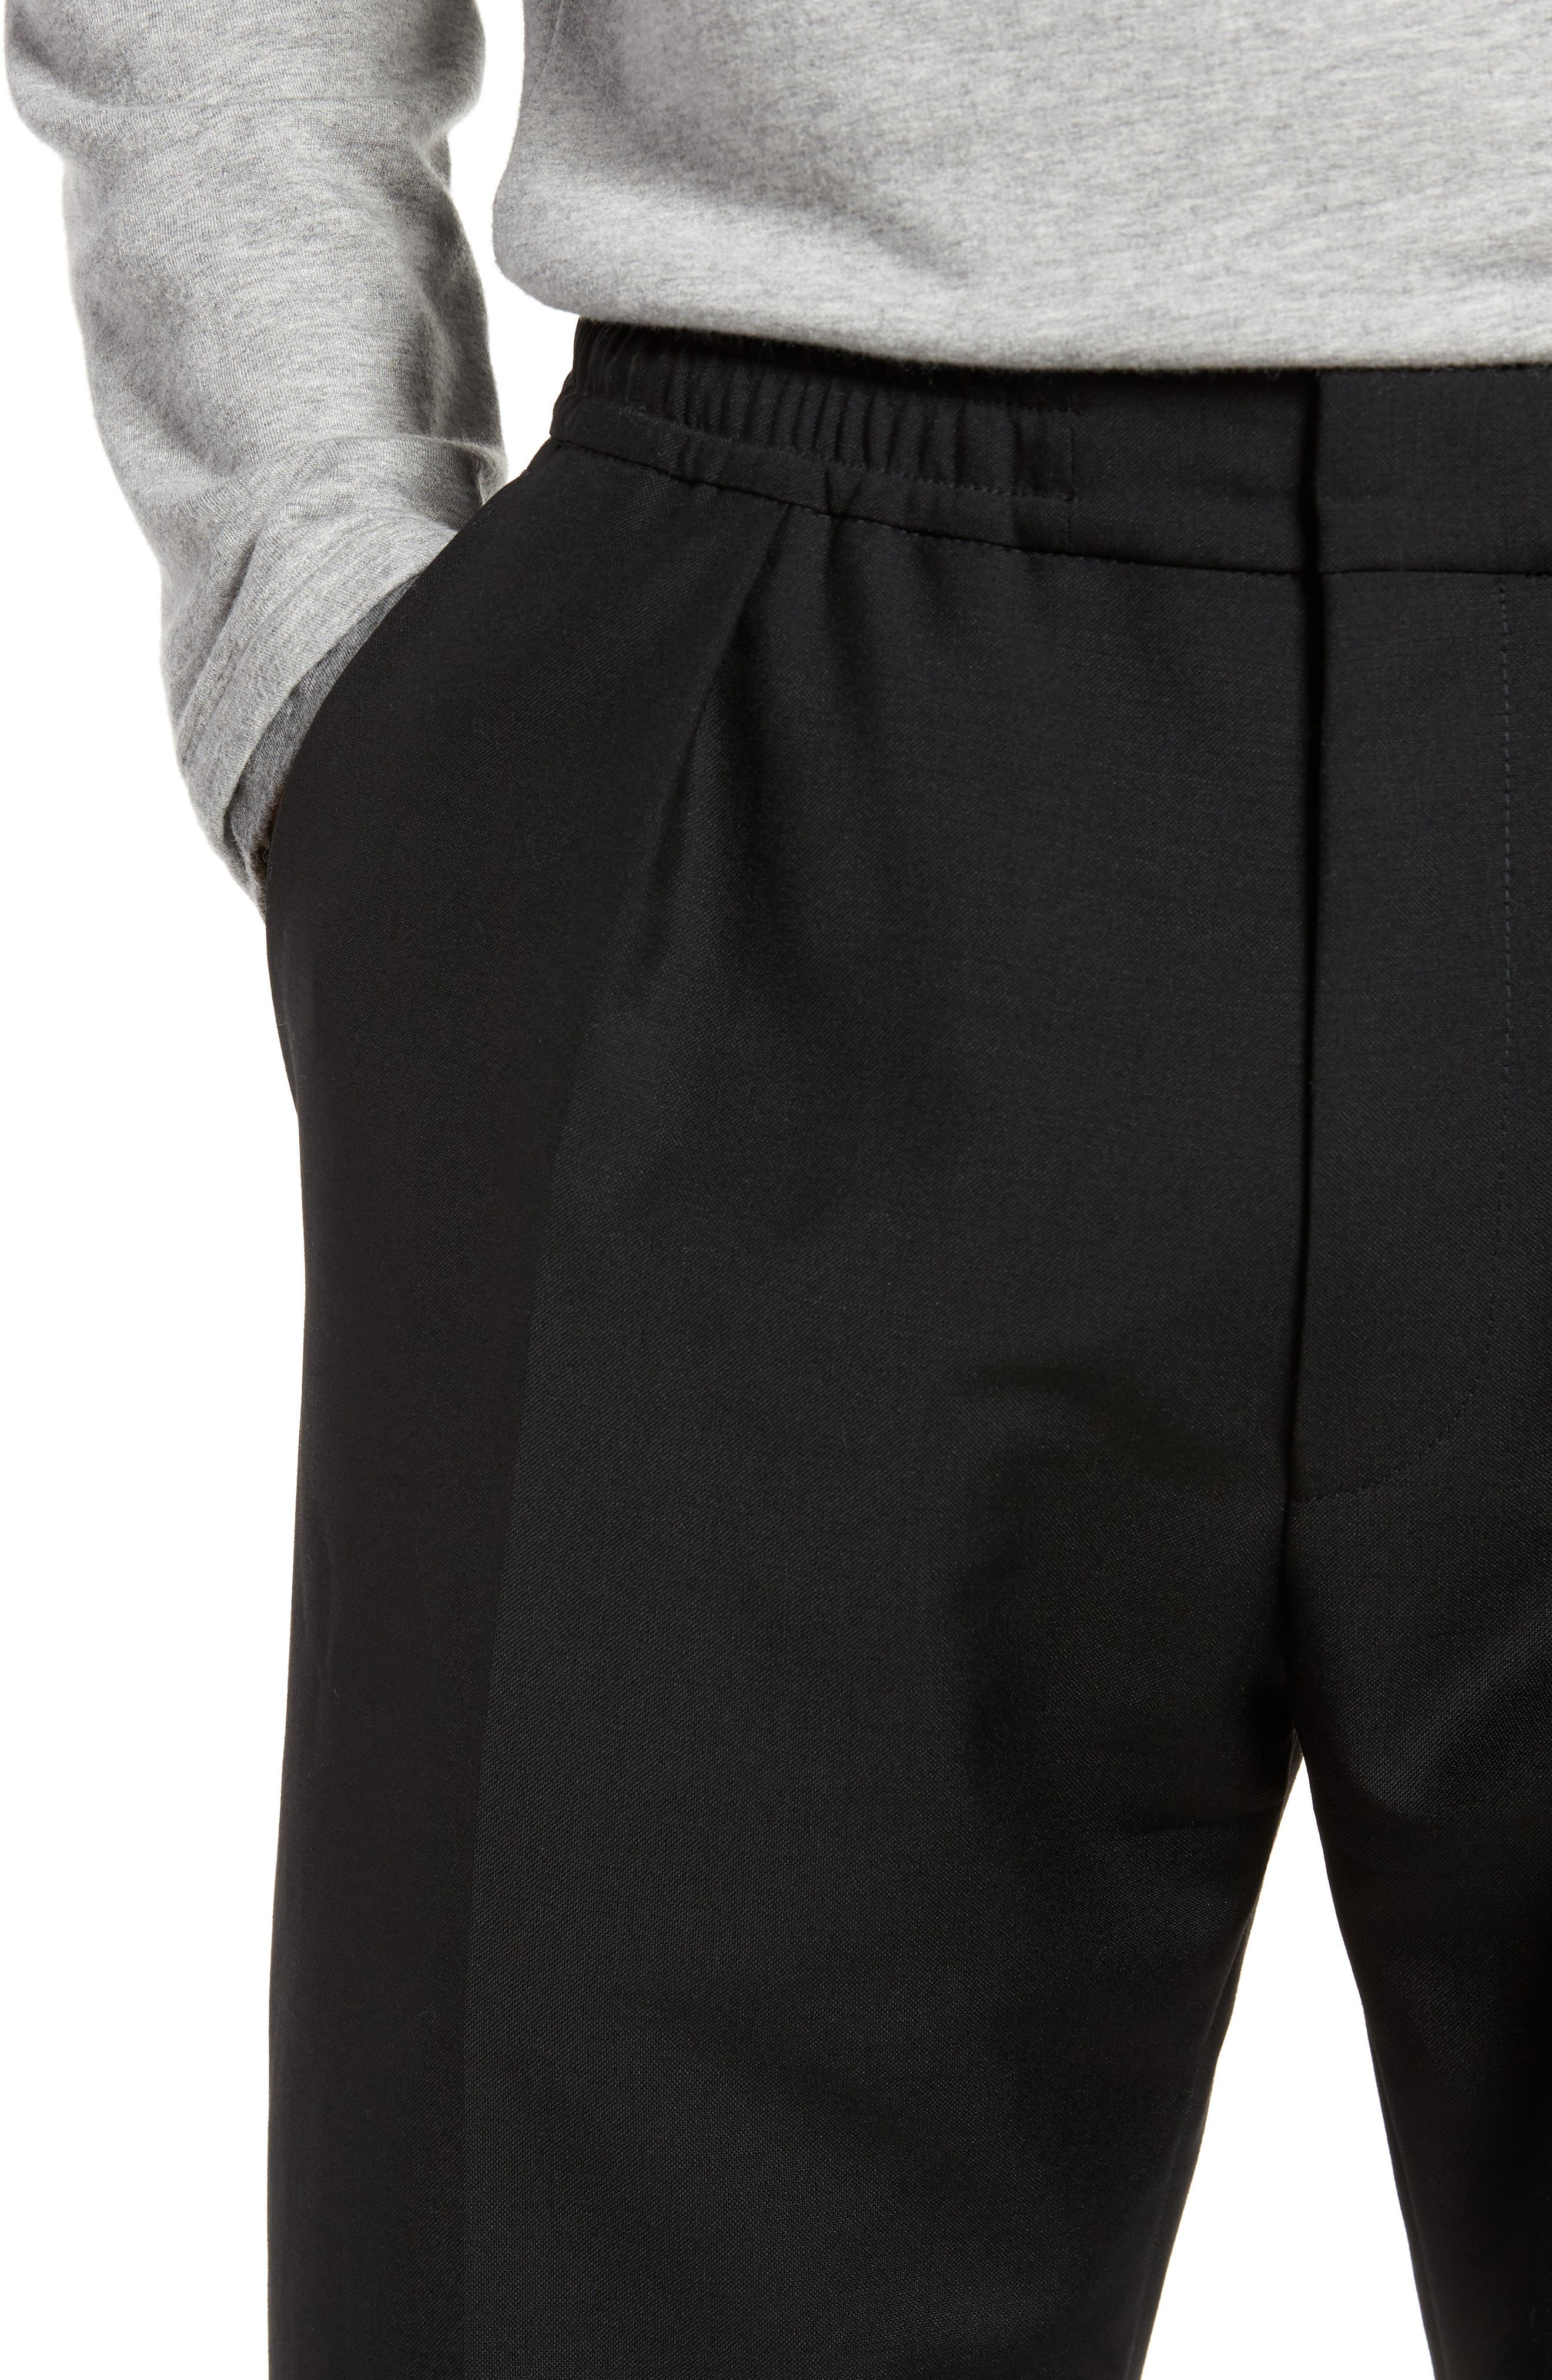 Payton Pleated Solid Wool & Mohair Jogger Trousers,                             Alternate thumbnail 4, color,                             001